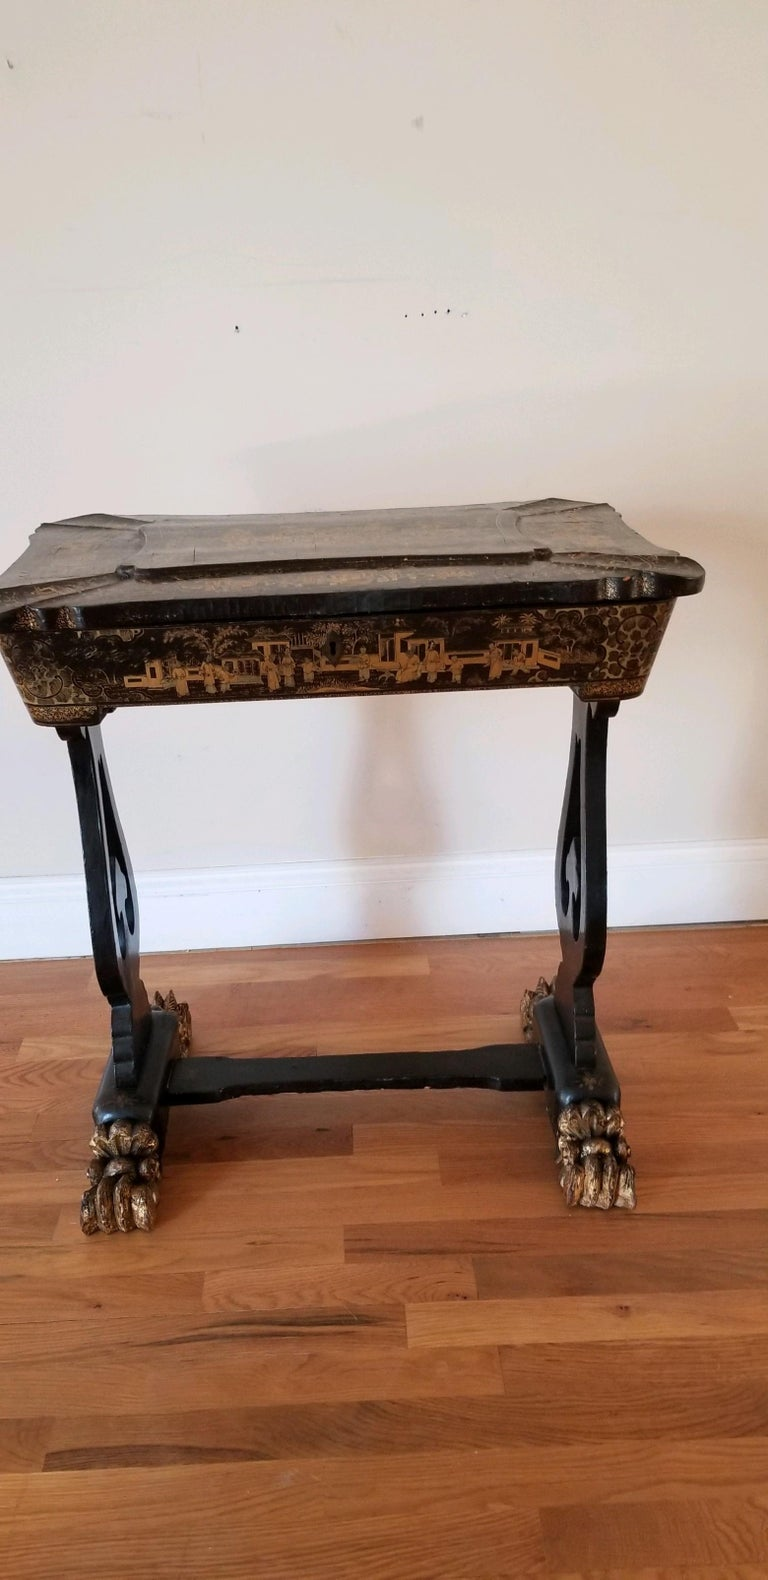 This is a rarity. An 18th early-19th century chinoiserie sewing table of exquisite form. It is the quintessential refinement for the lady's parlor of the period. Chinoiserie was all the rage as the markets were opened up for tea trading then